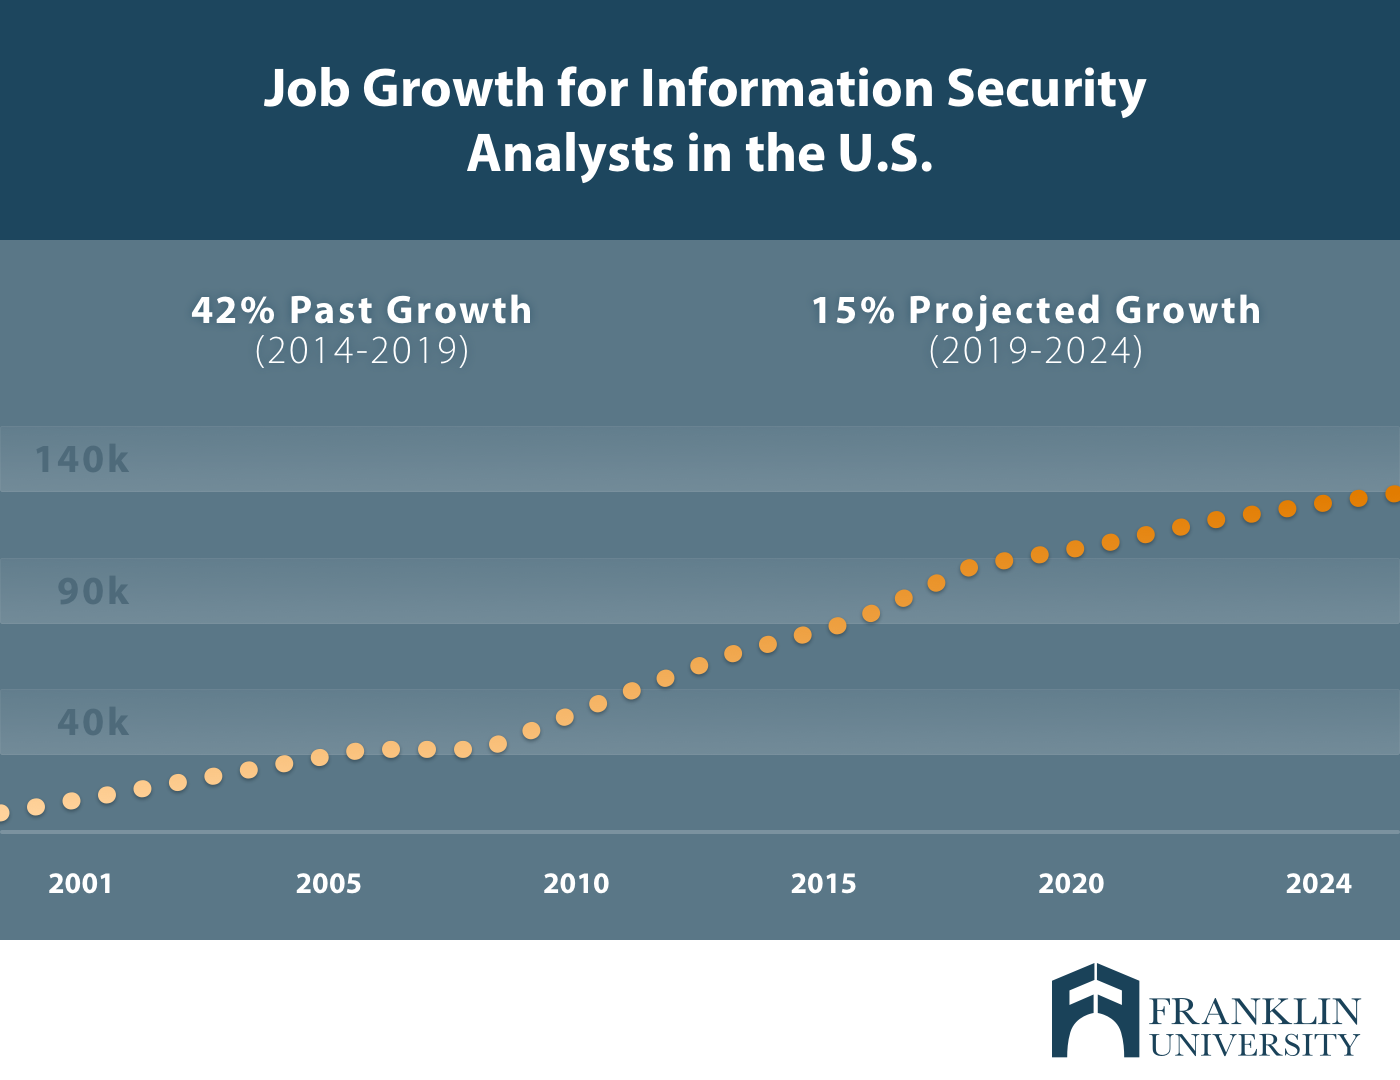 franklin_job growth information security analysts .png